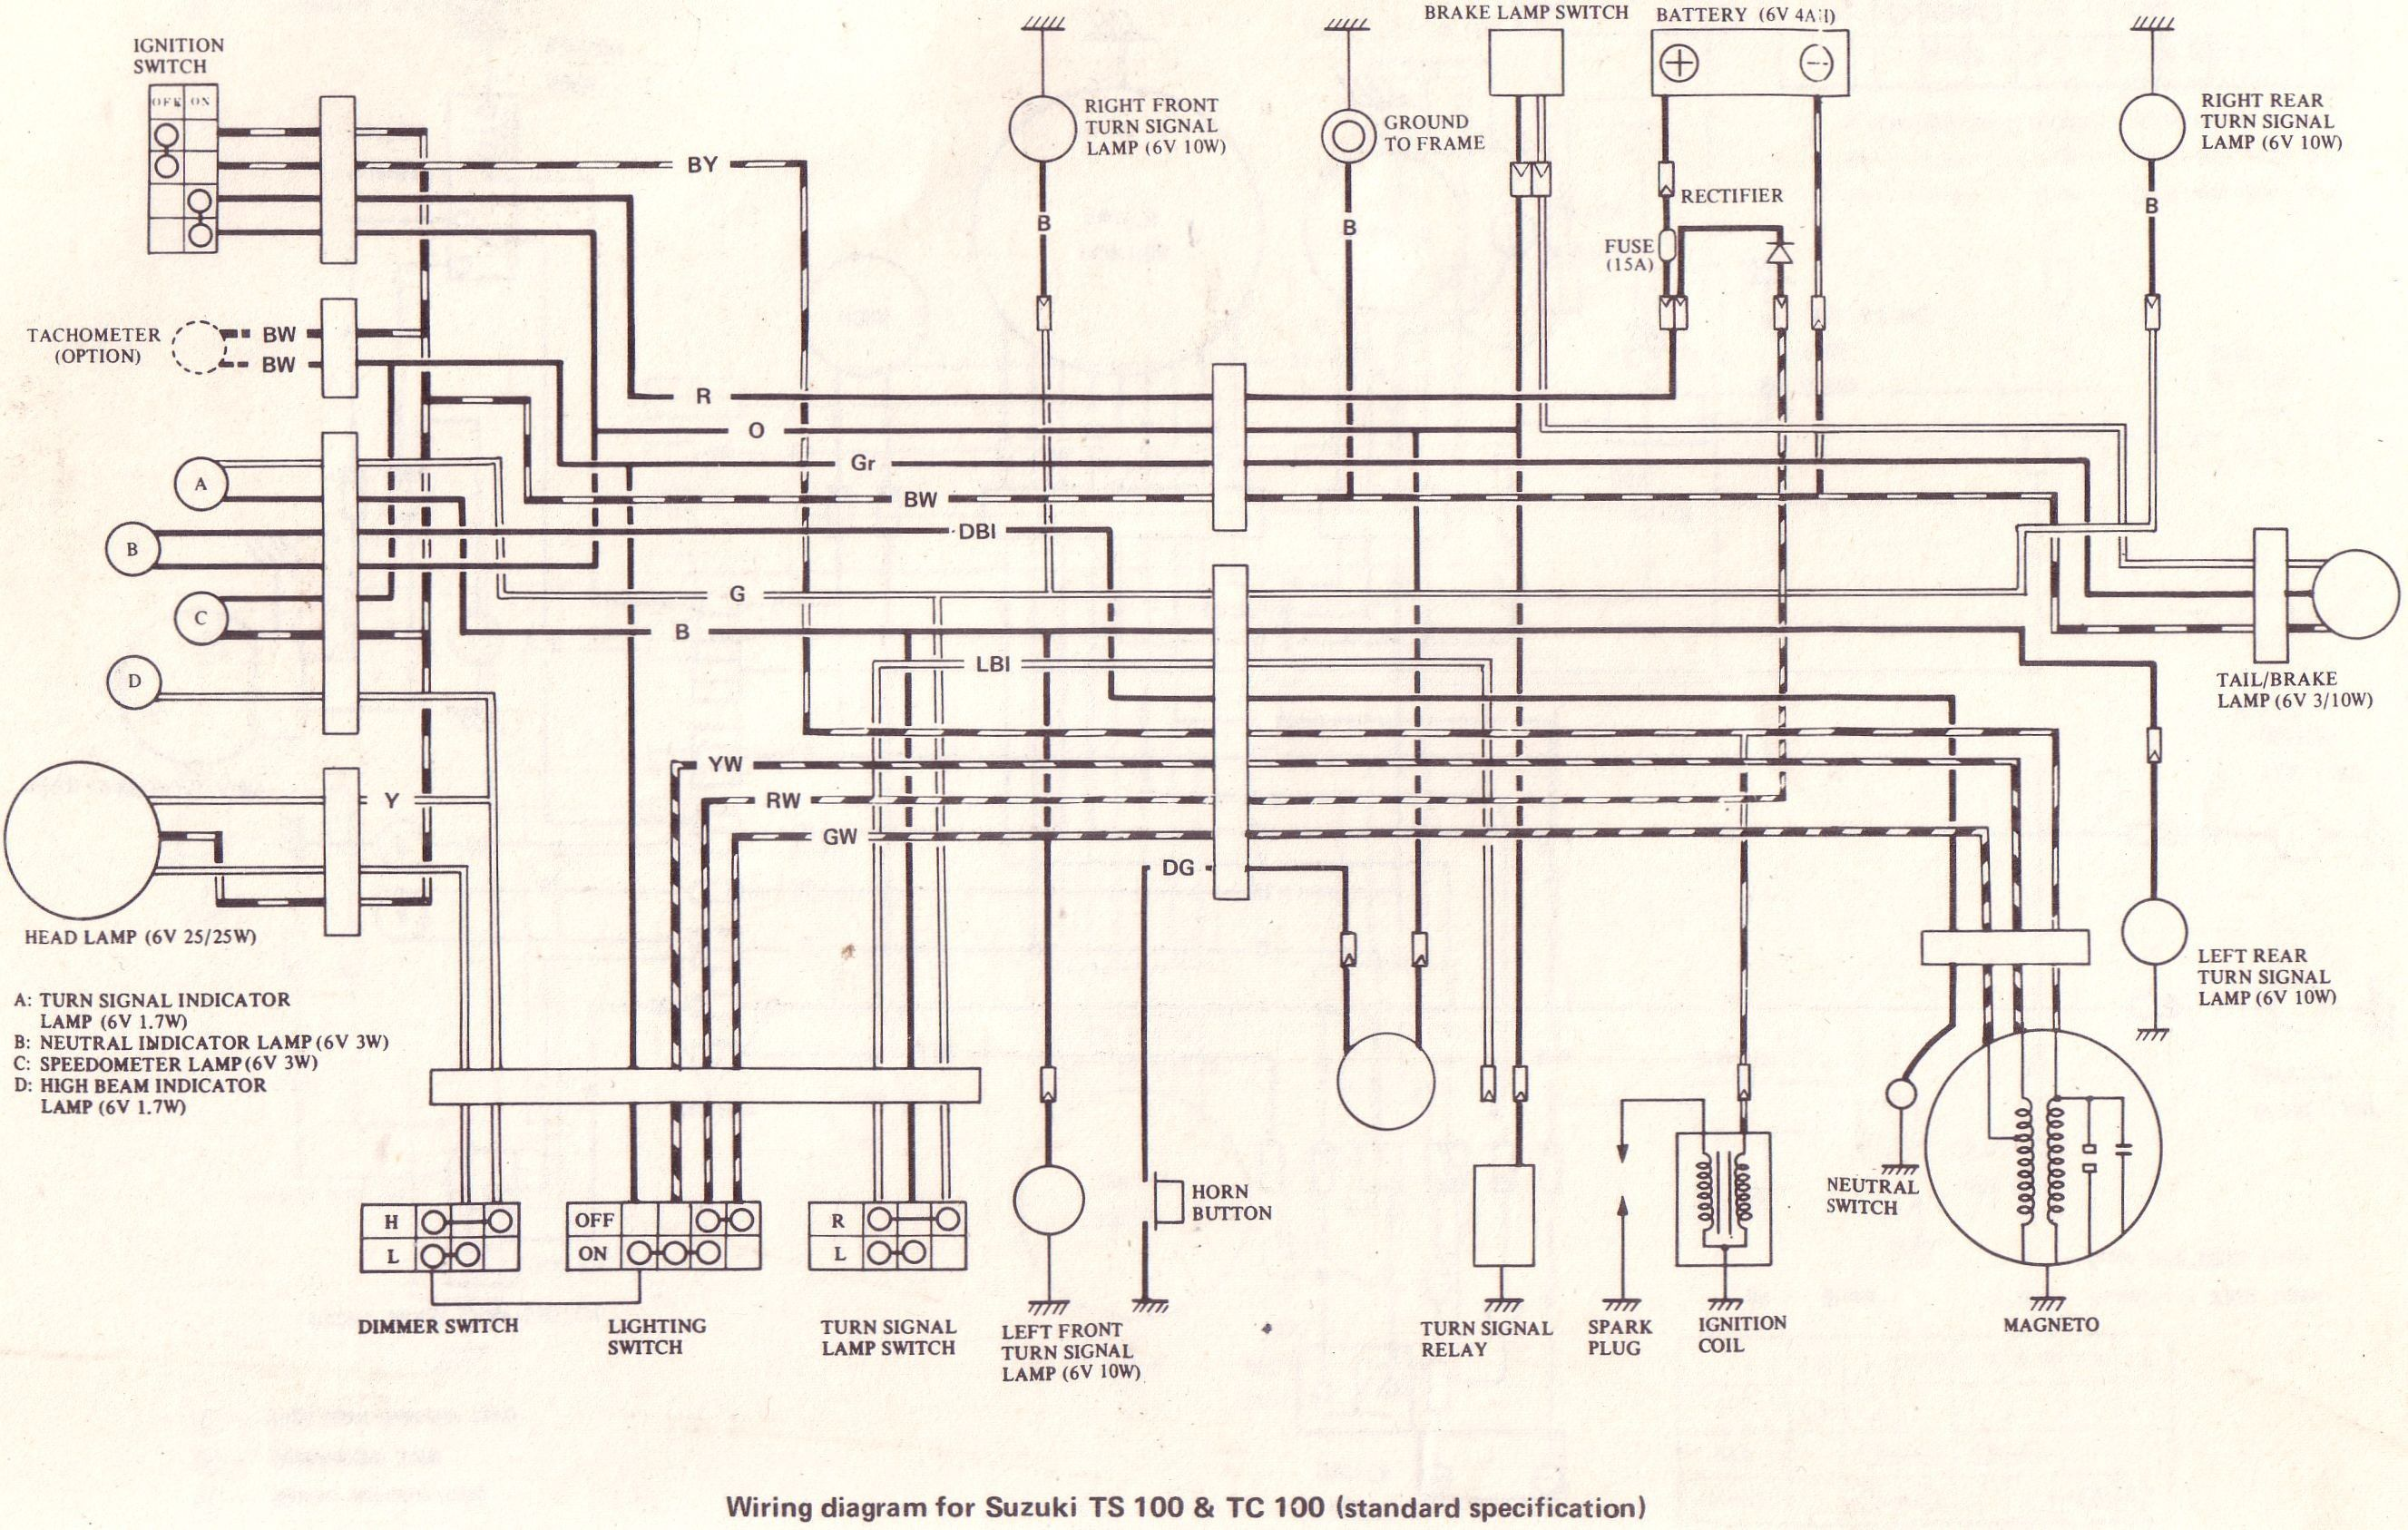 Pin By Phyllis On Suzuki Diagram Motorcycle Wiring Wire